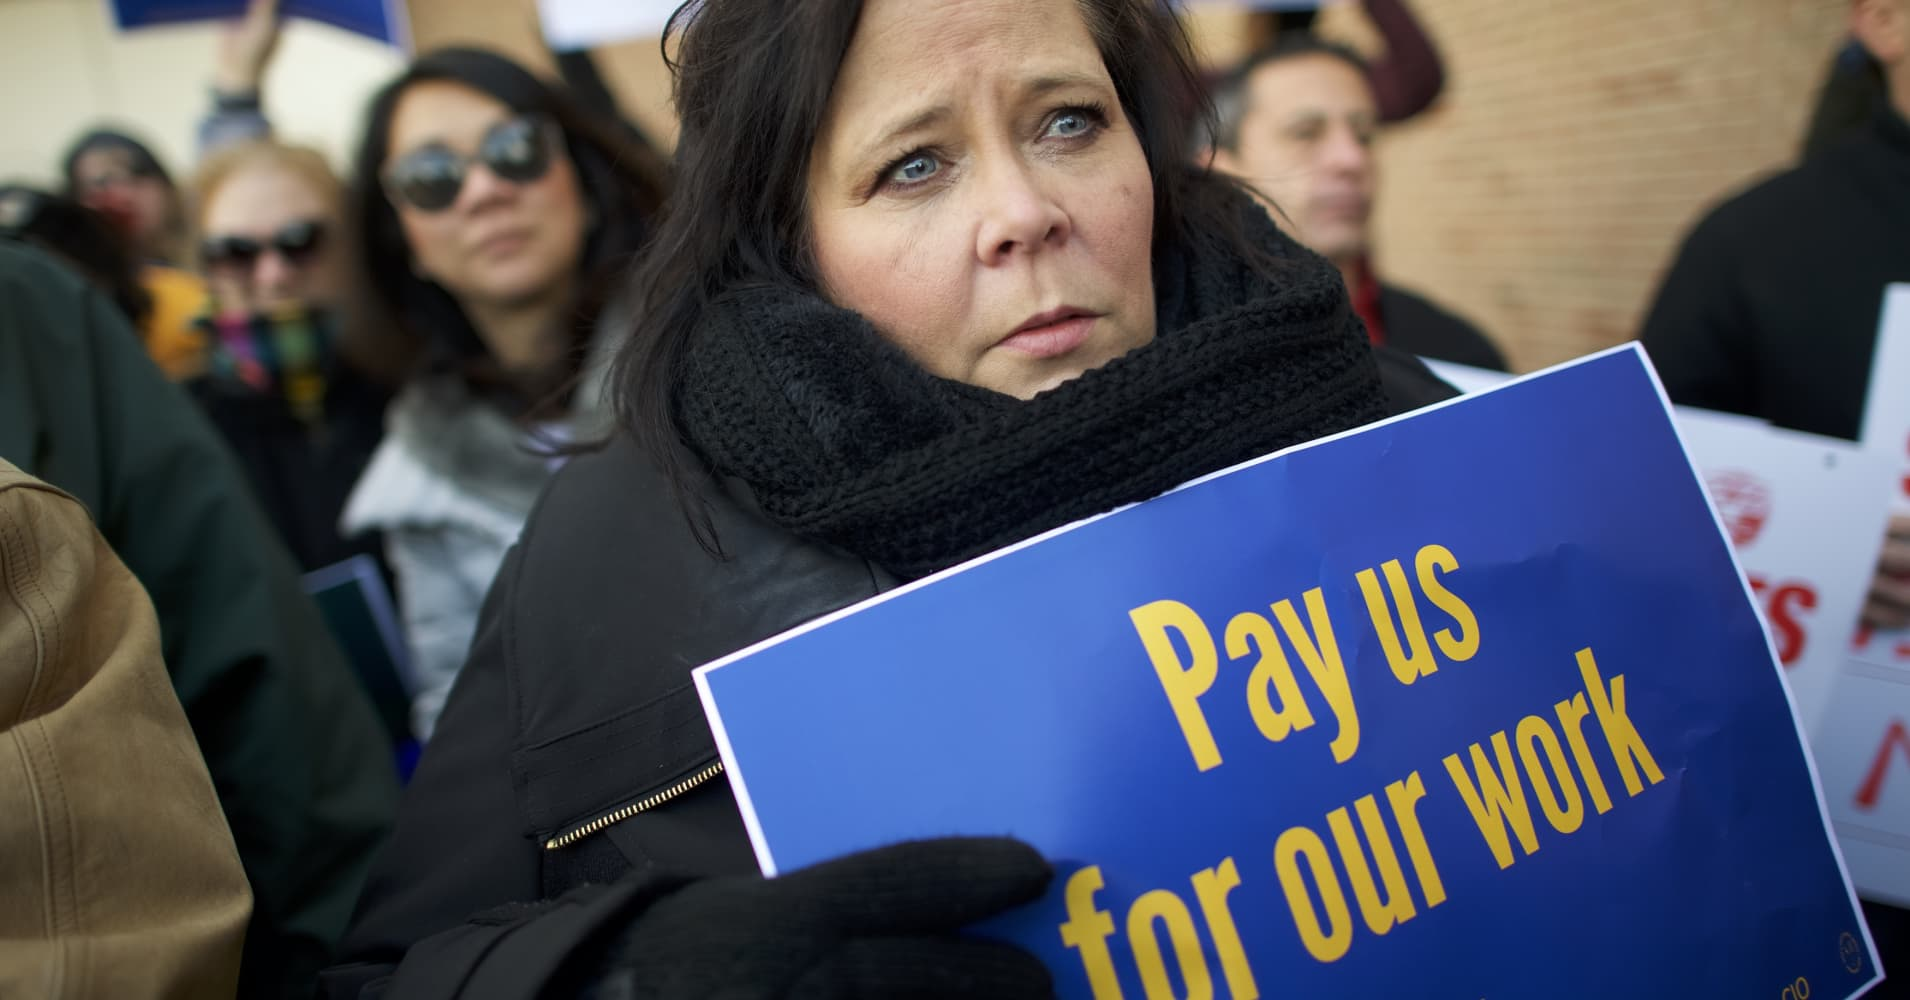 Marie Owens Powell holds a placard stating 'Pay us for our work' while demonstrating with Philadelphia Airport TSA and airport workers outside the Philadelphia International Airport on January 25, 2019 in Philadelphia, Pennsylvania.